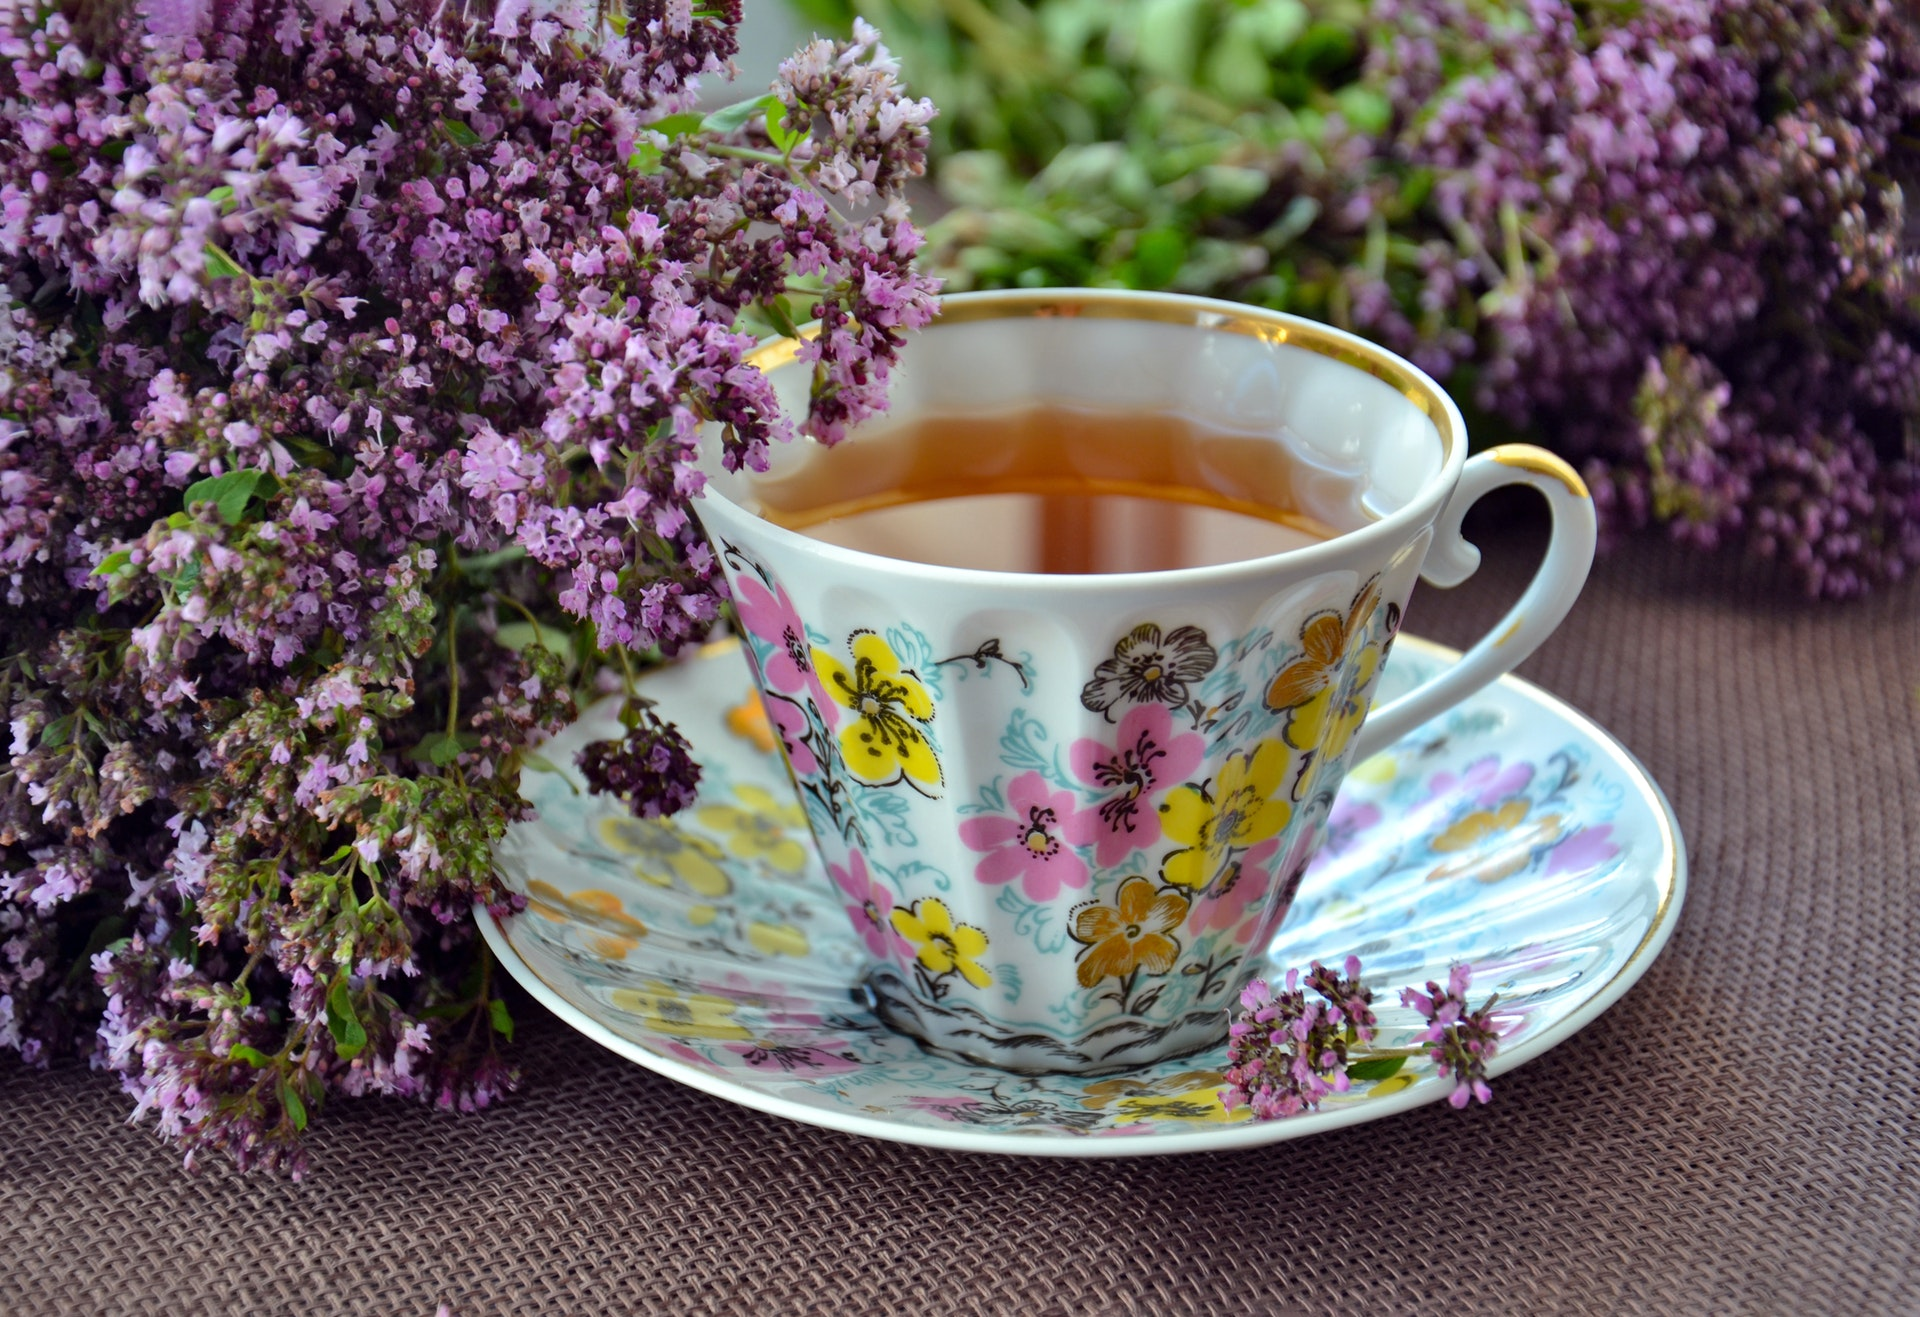 Which Tea is the healthiest?